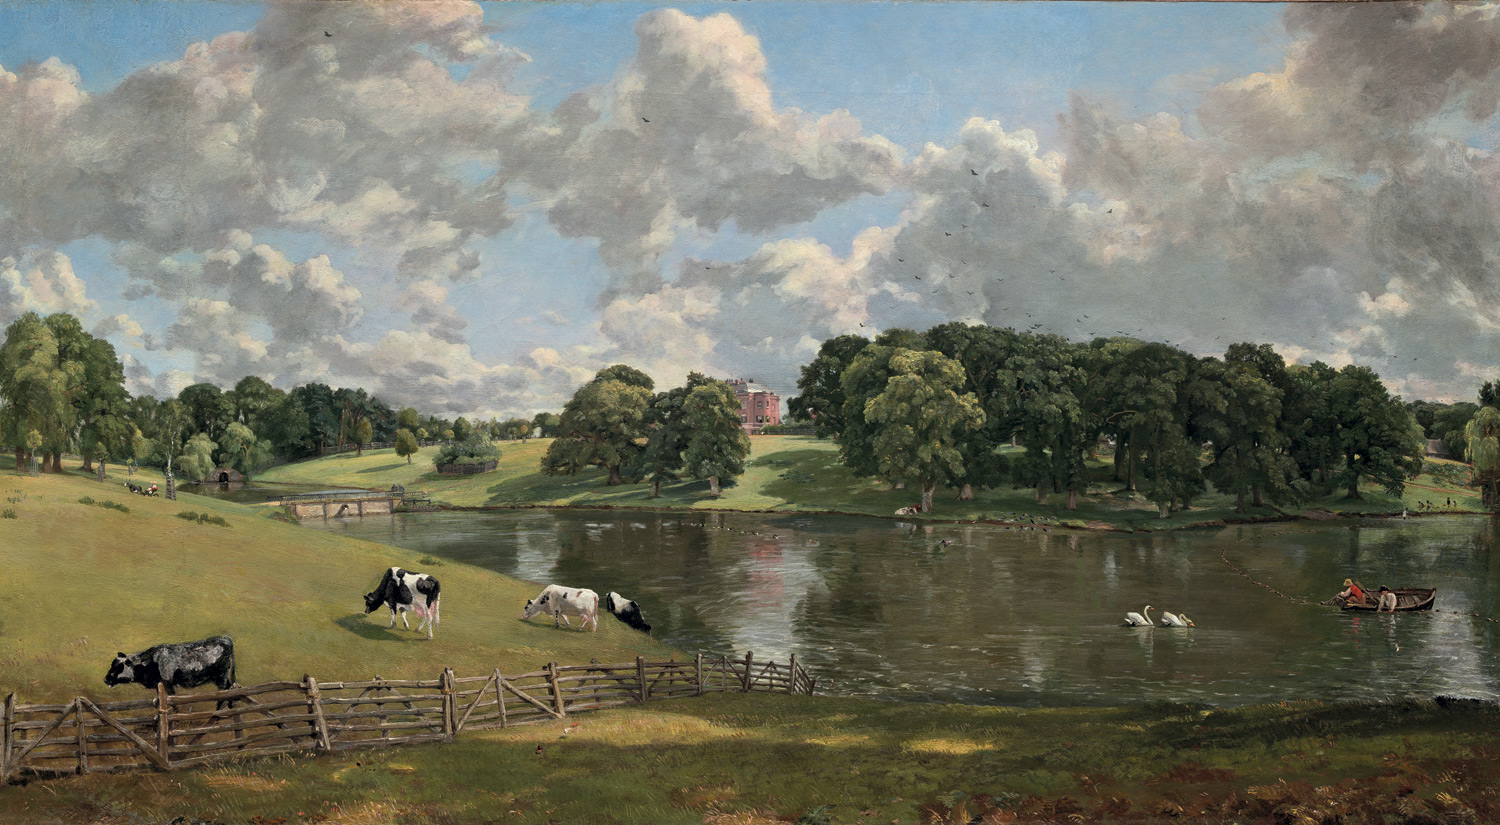 Constable's painting of Wivenhoe Park. Courtesy of the National Gallery of Art, Washington DC.